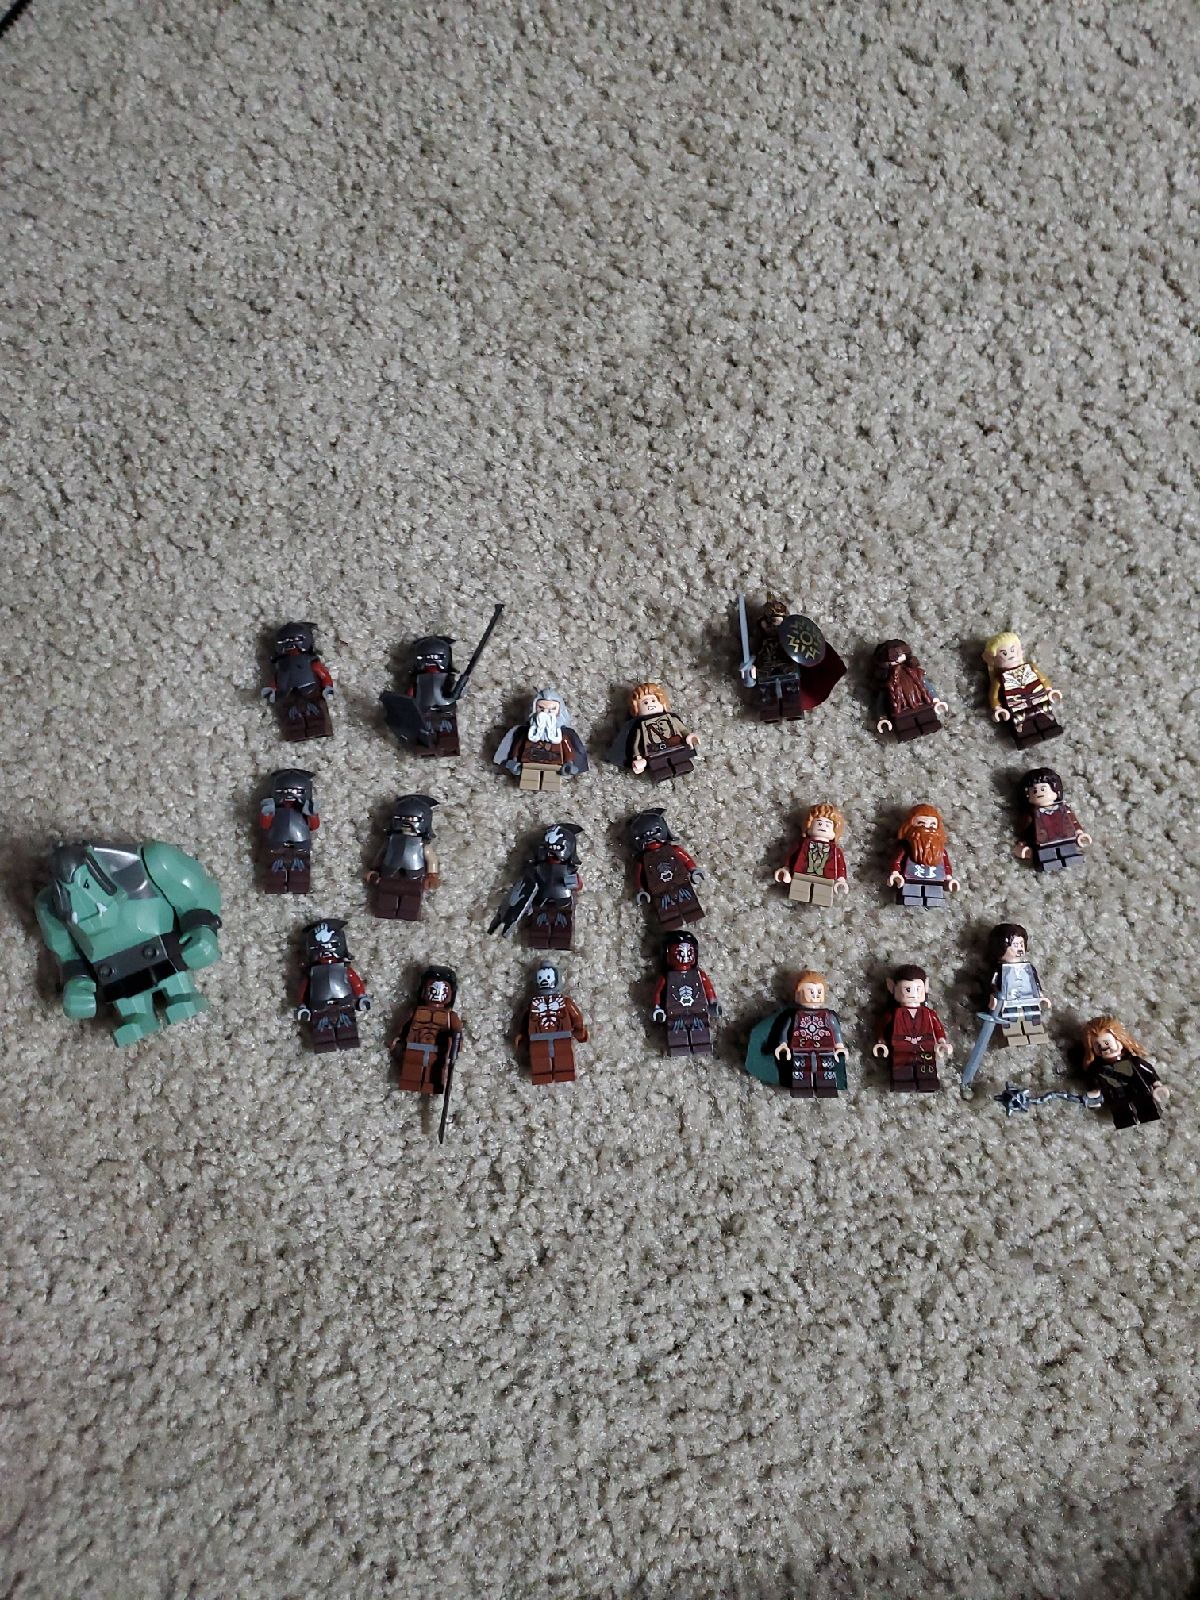 Lot of Lord of rings and The Hobbit Lego